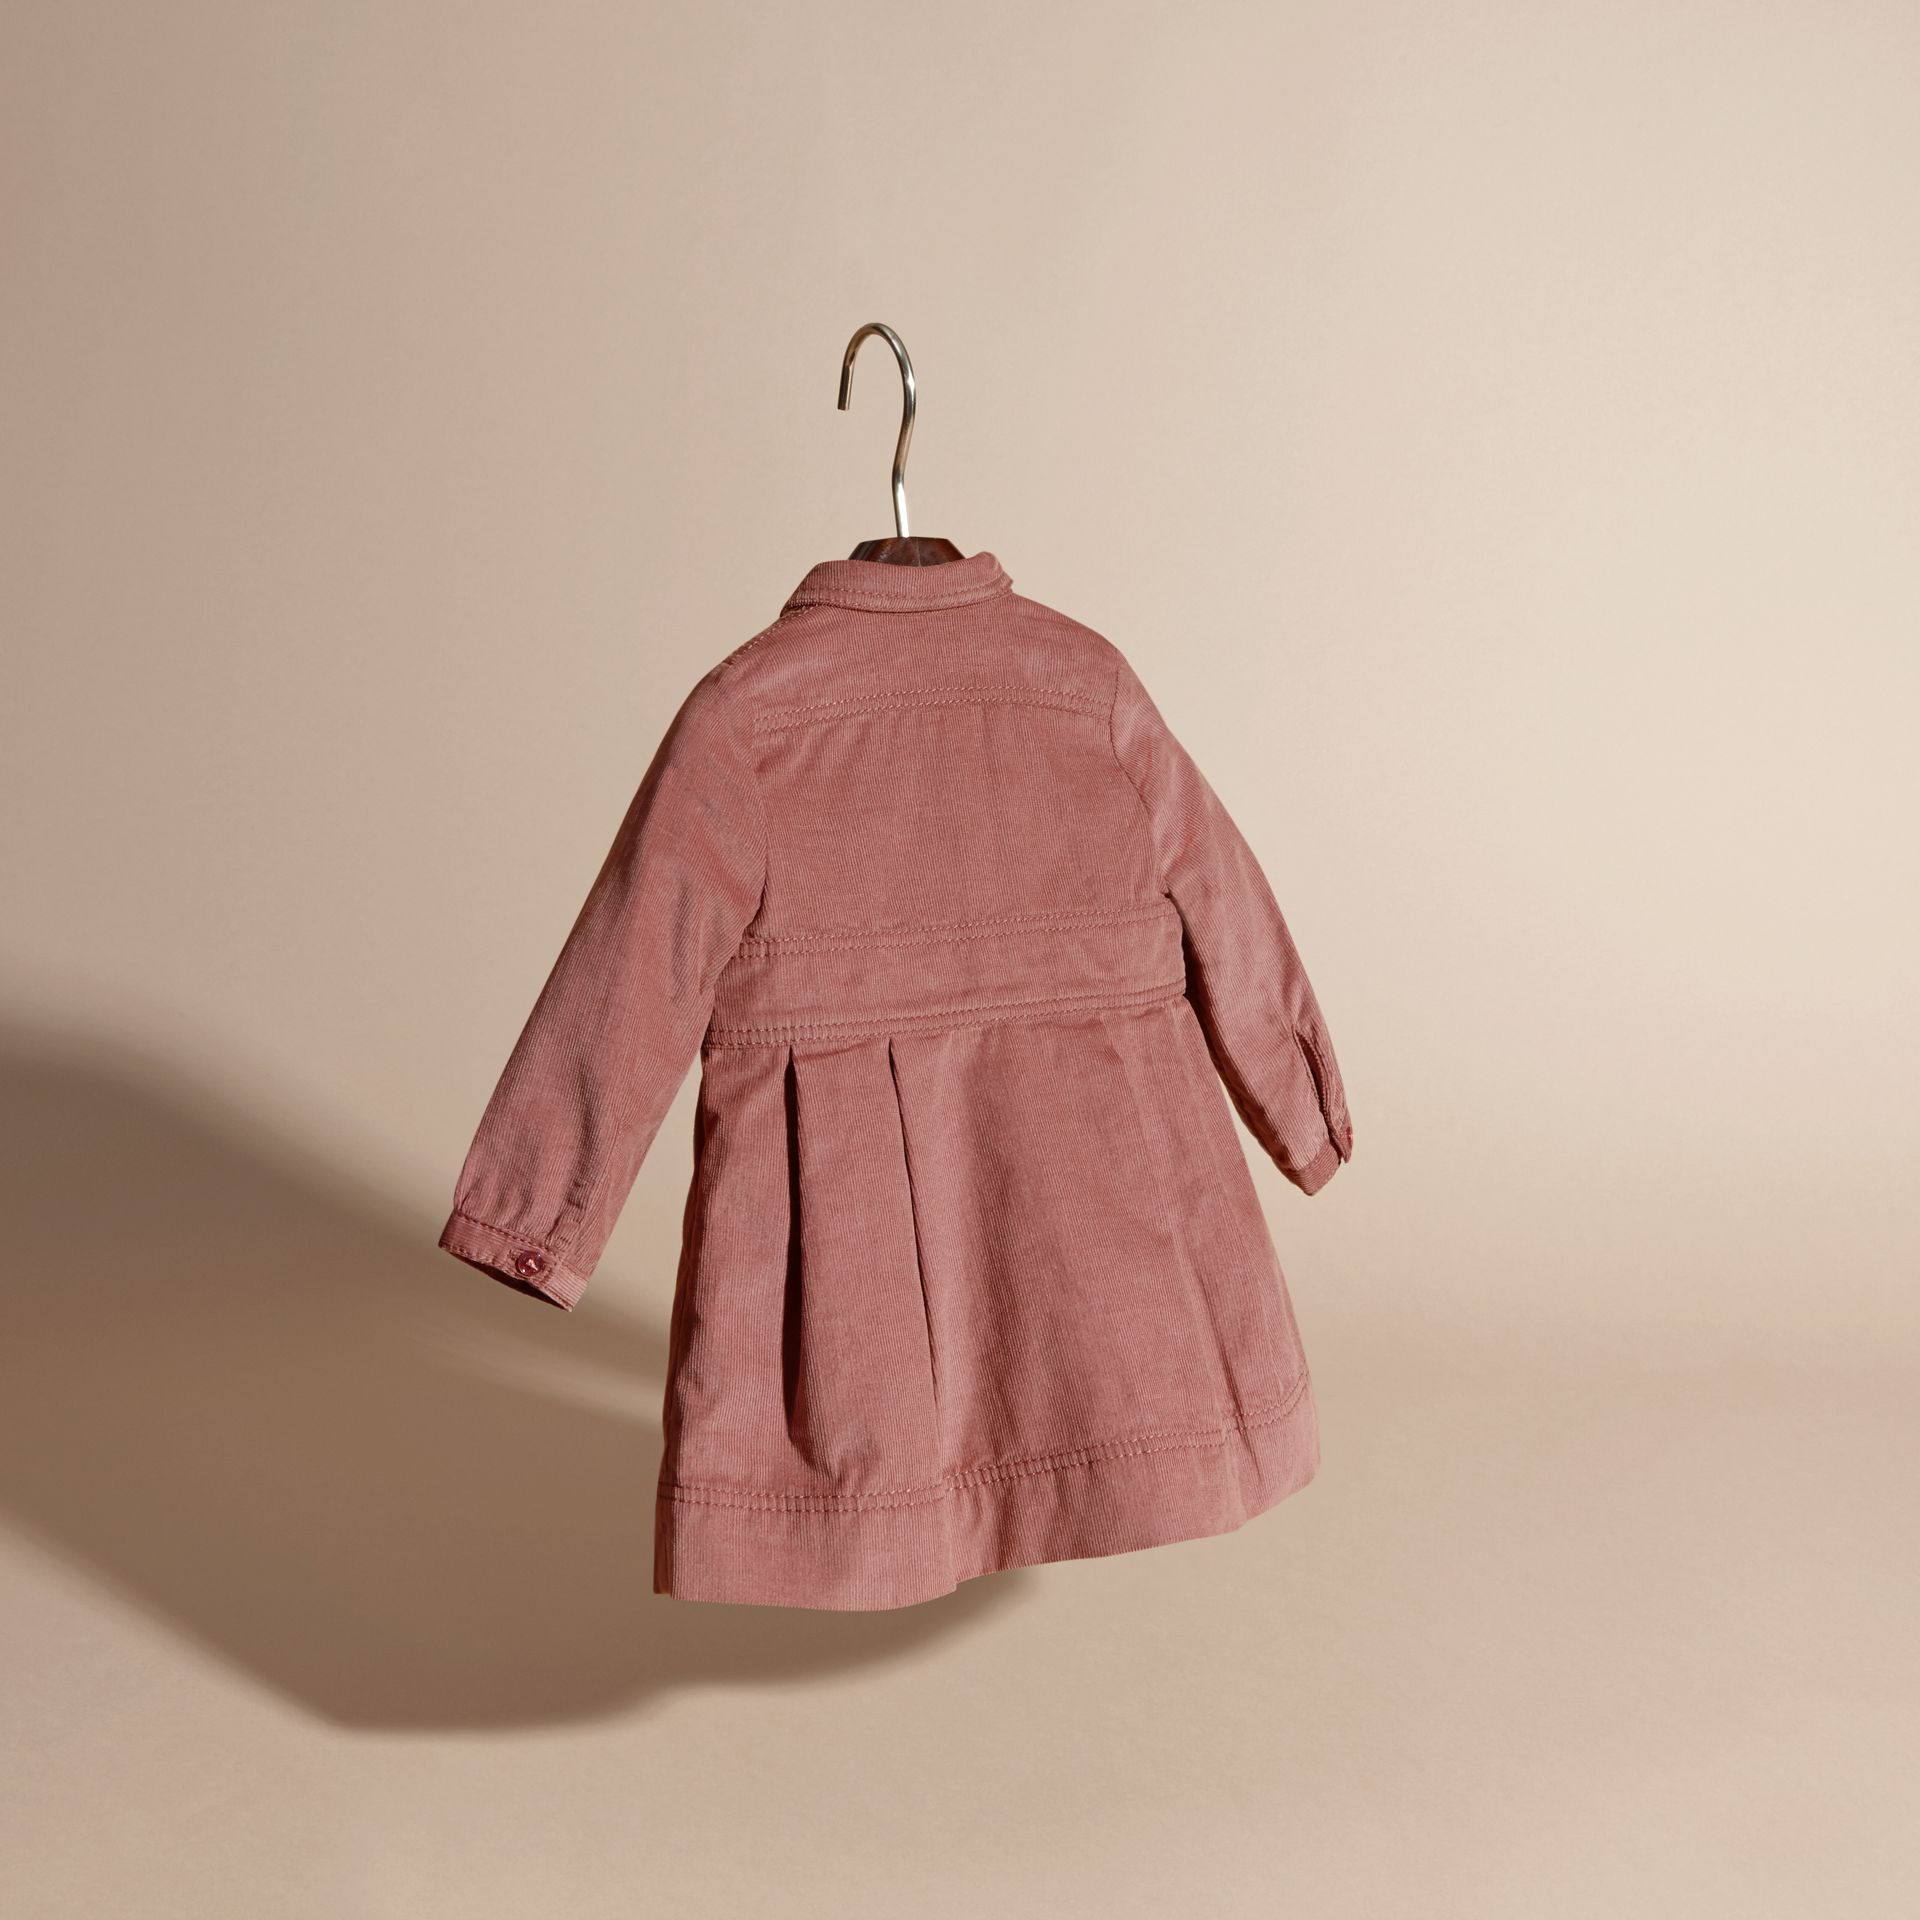 Pale ash rose Cotton Corduroy Shirt Dress Pale Ash Rose - gallery image 4